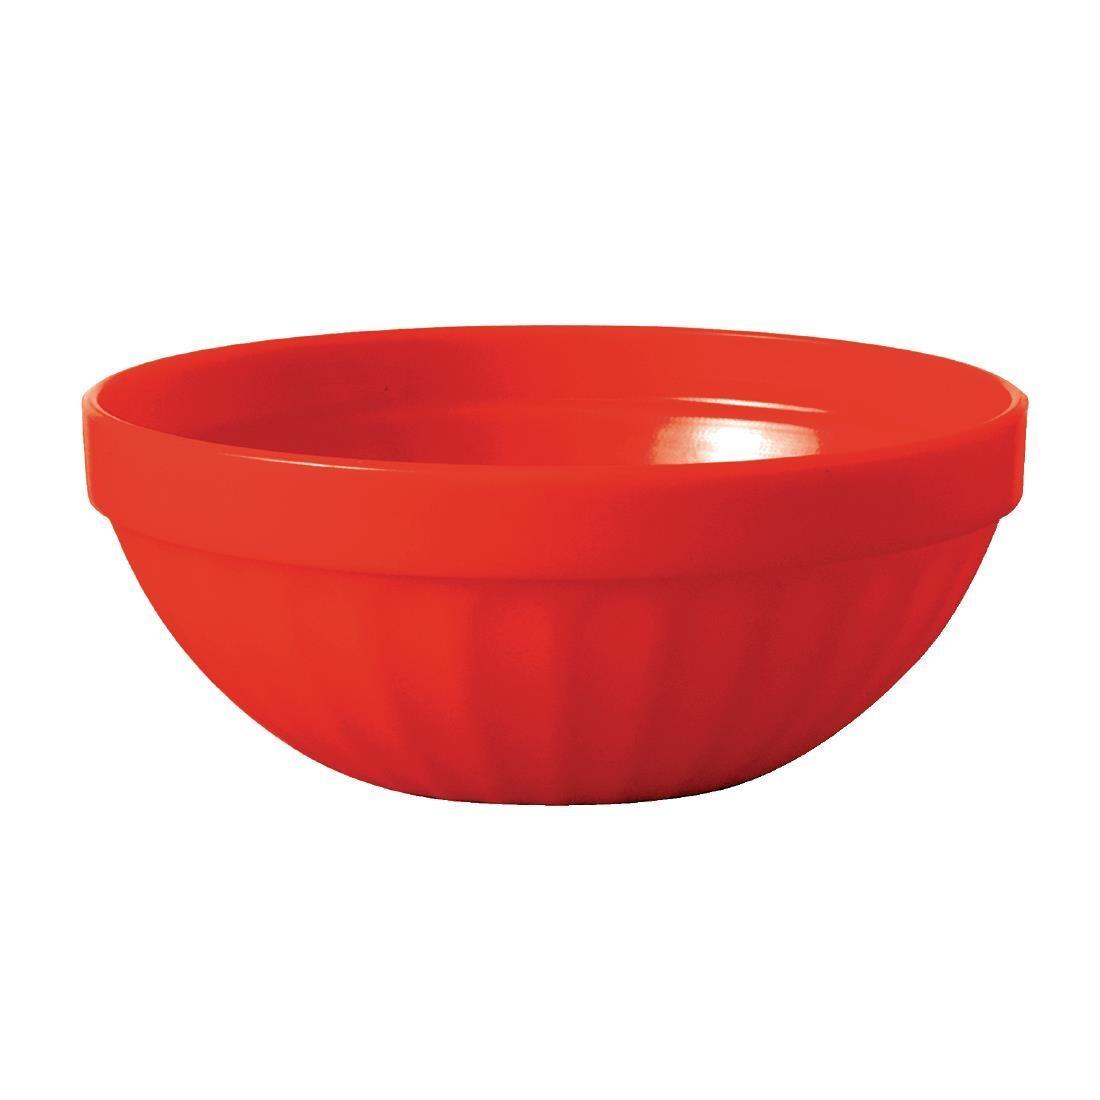 Kristallon Polycarbonate Bowls Red 102mm - Case 12 - CE277